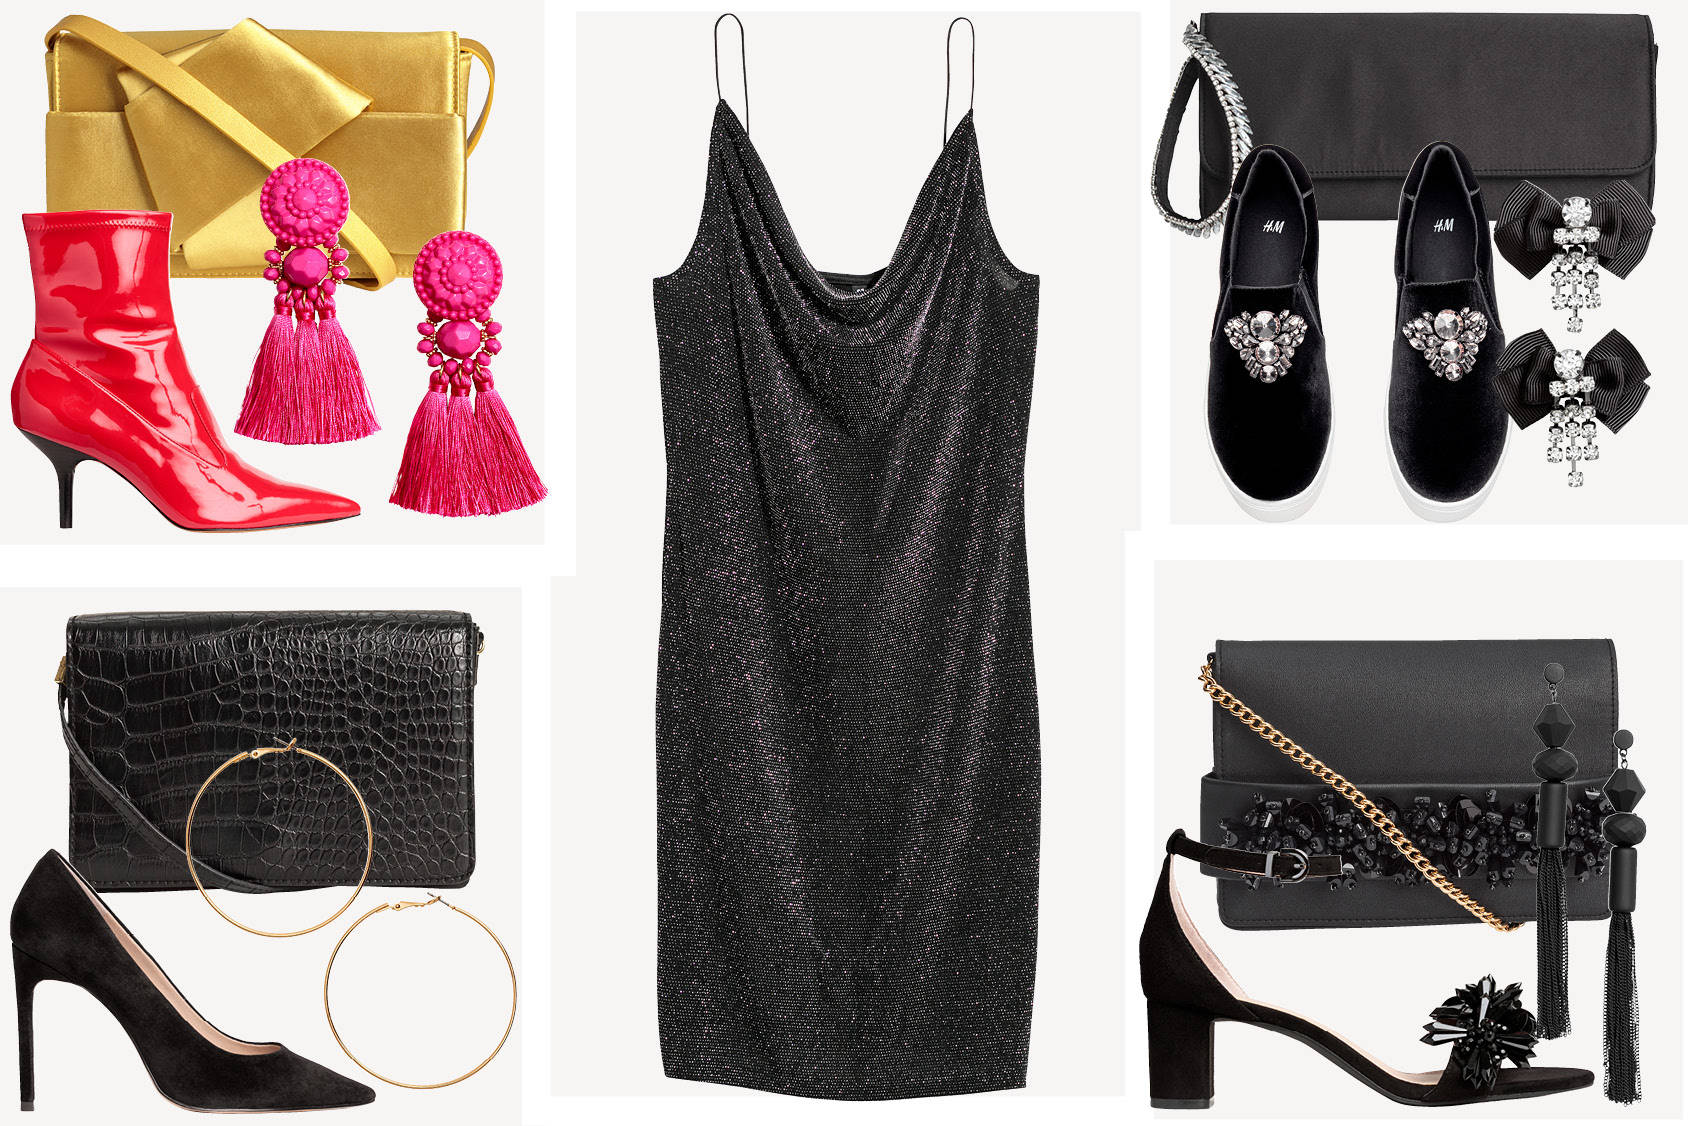 4 ways to style the perfect party dress